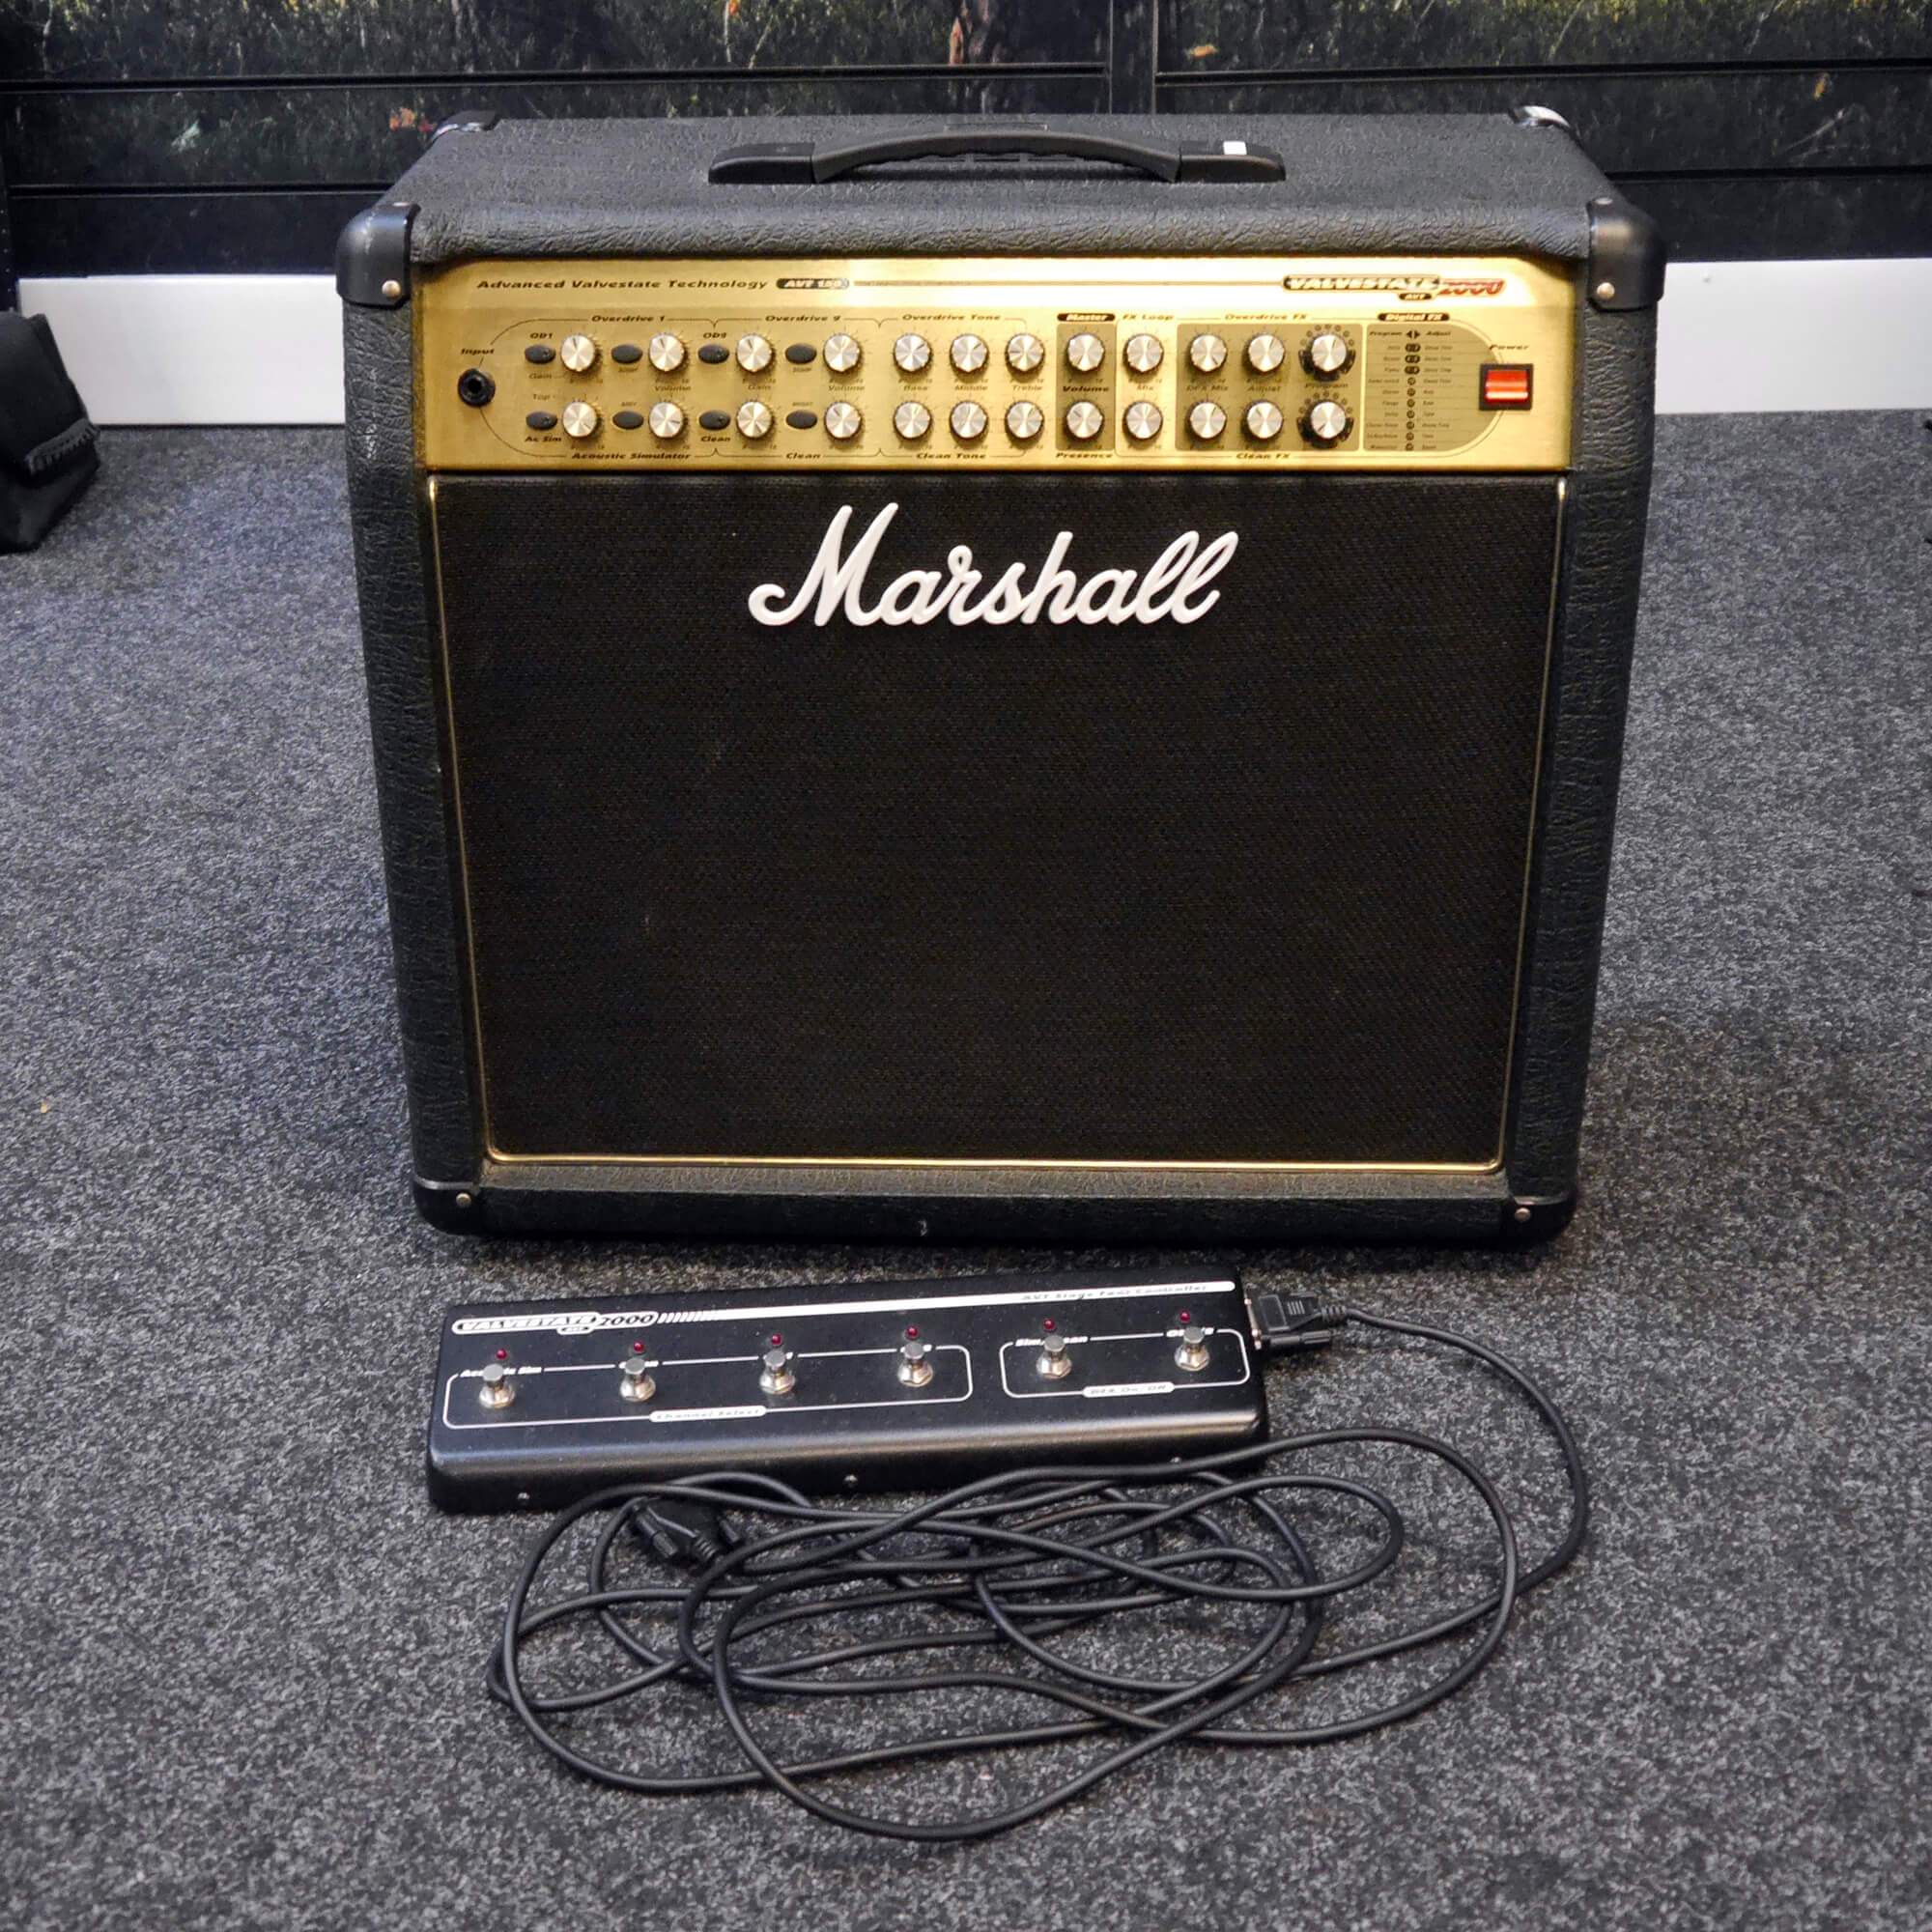 Marshall AVT150 Combo Amplifier with Footswitch - 2nd Hand **UK SHIPPING ONLY**